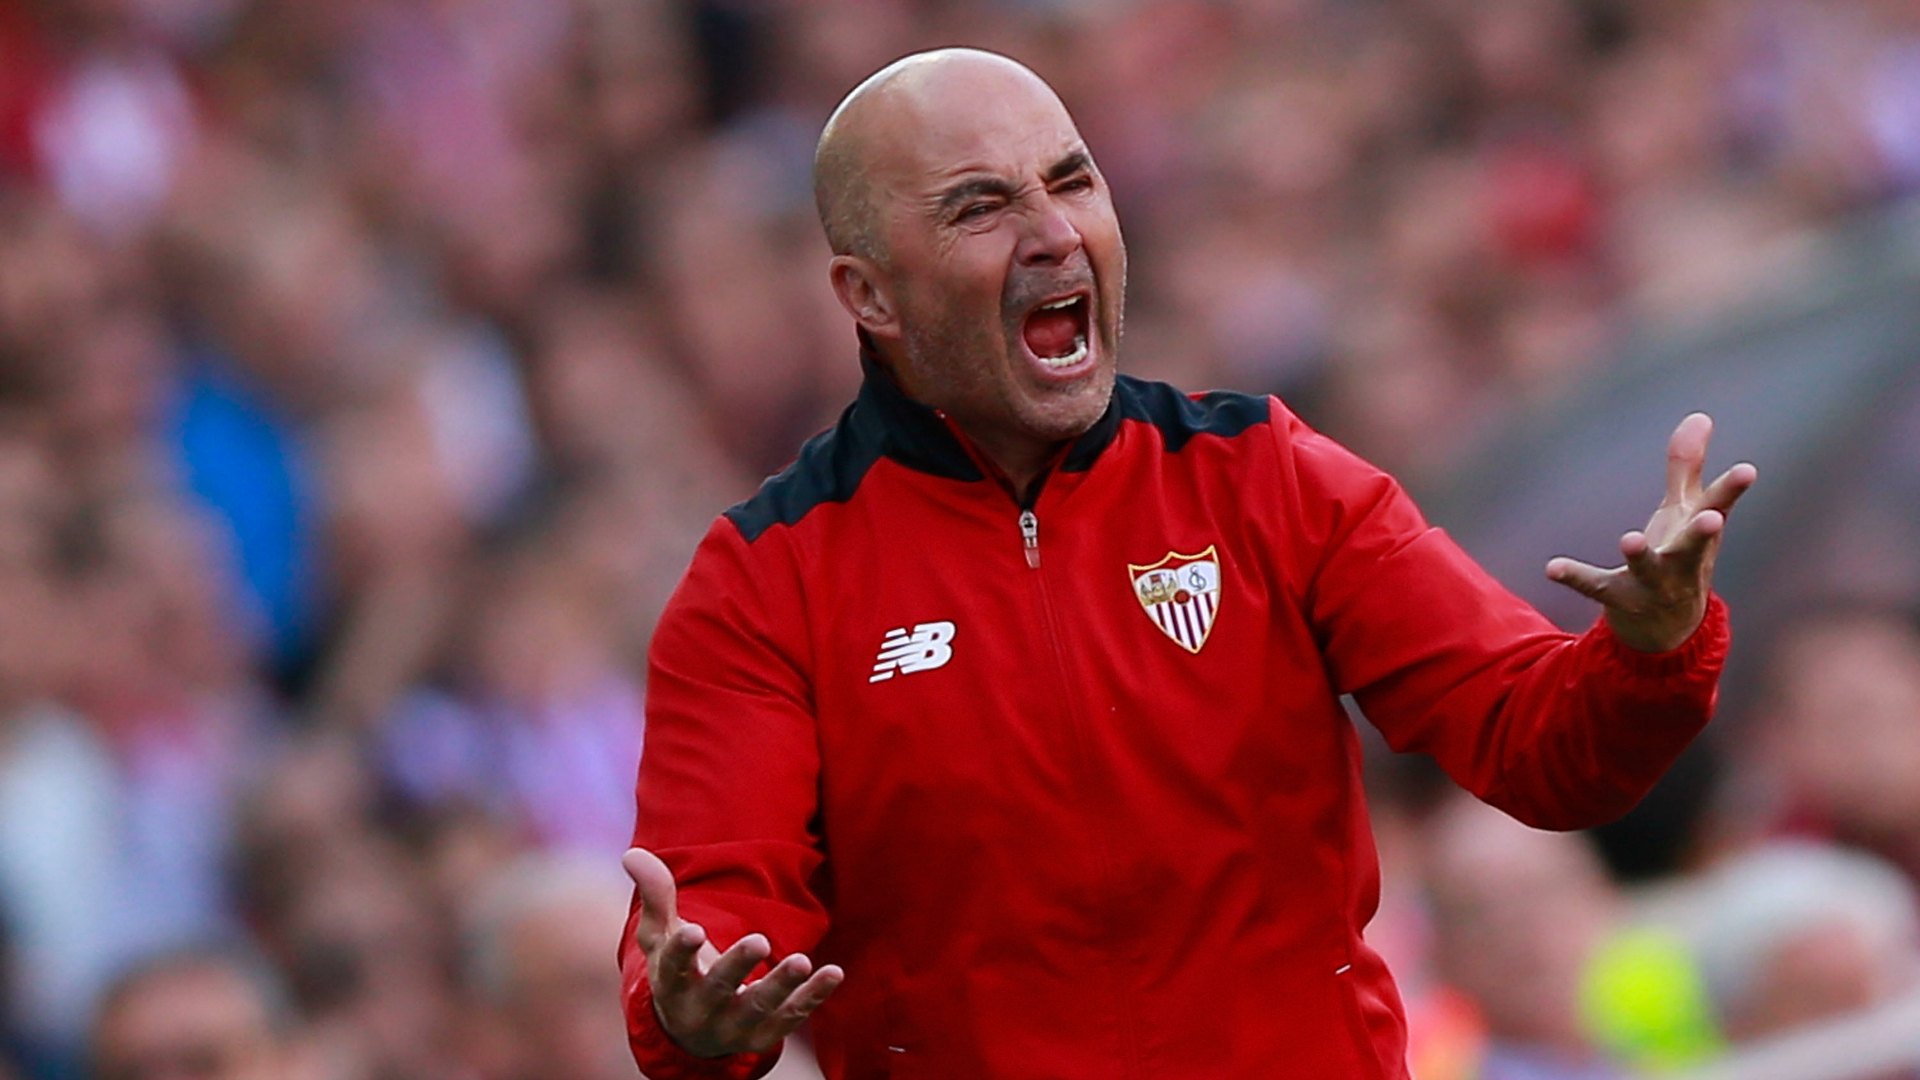 Jorge Sampaoli says Argentina wants him as next coach